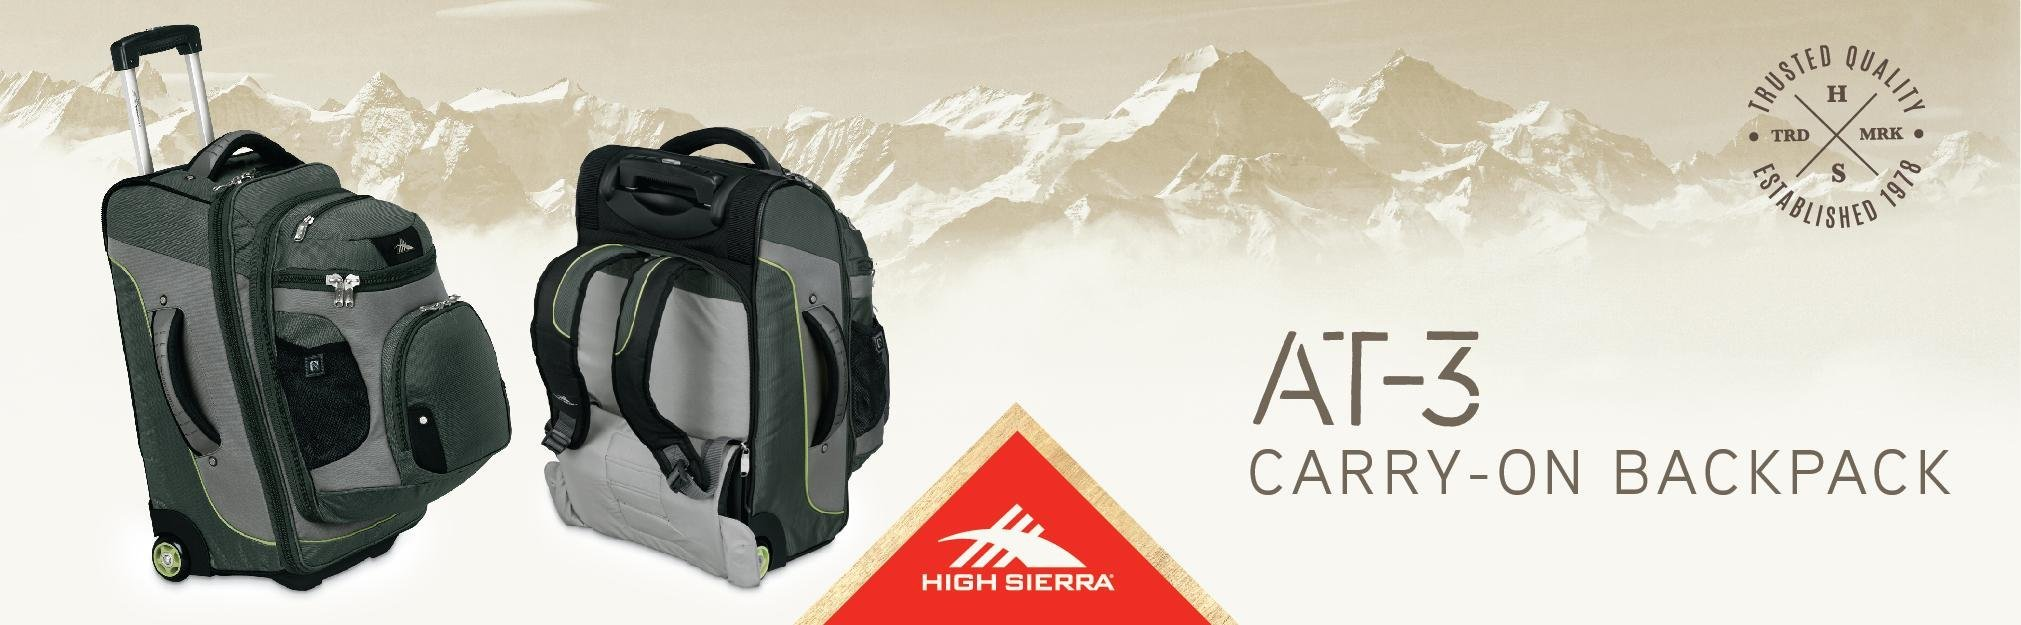 at-3 carry-on backpack